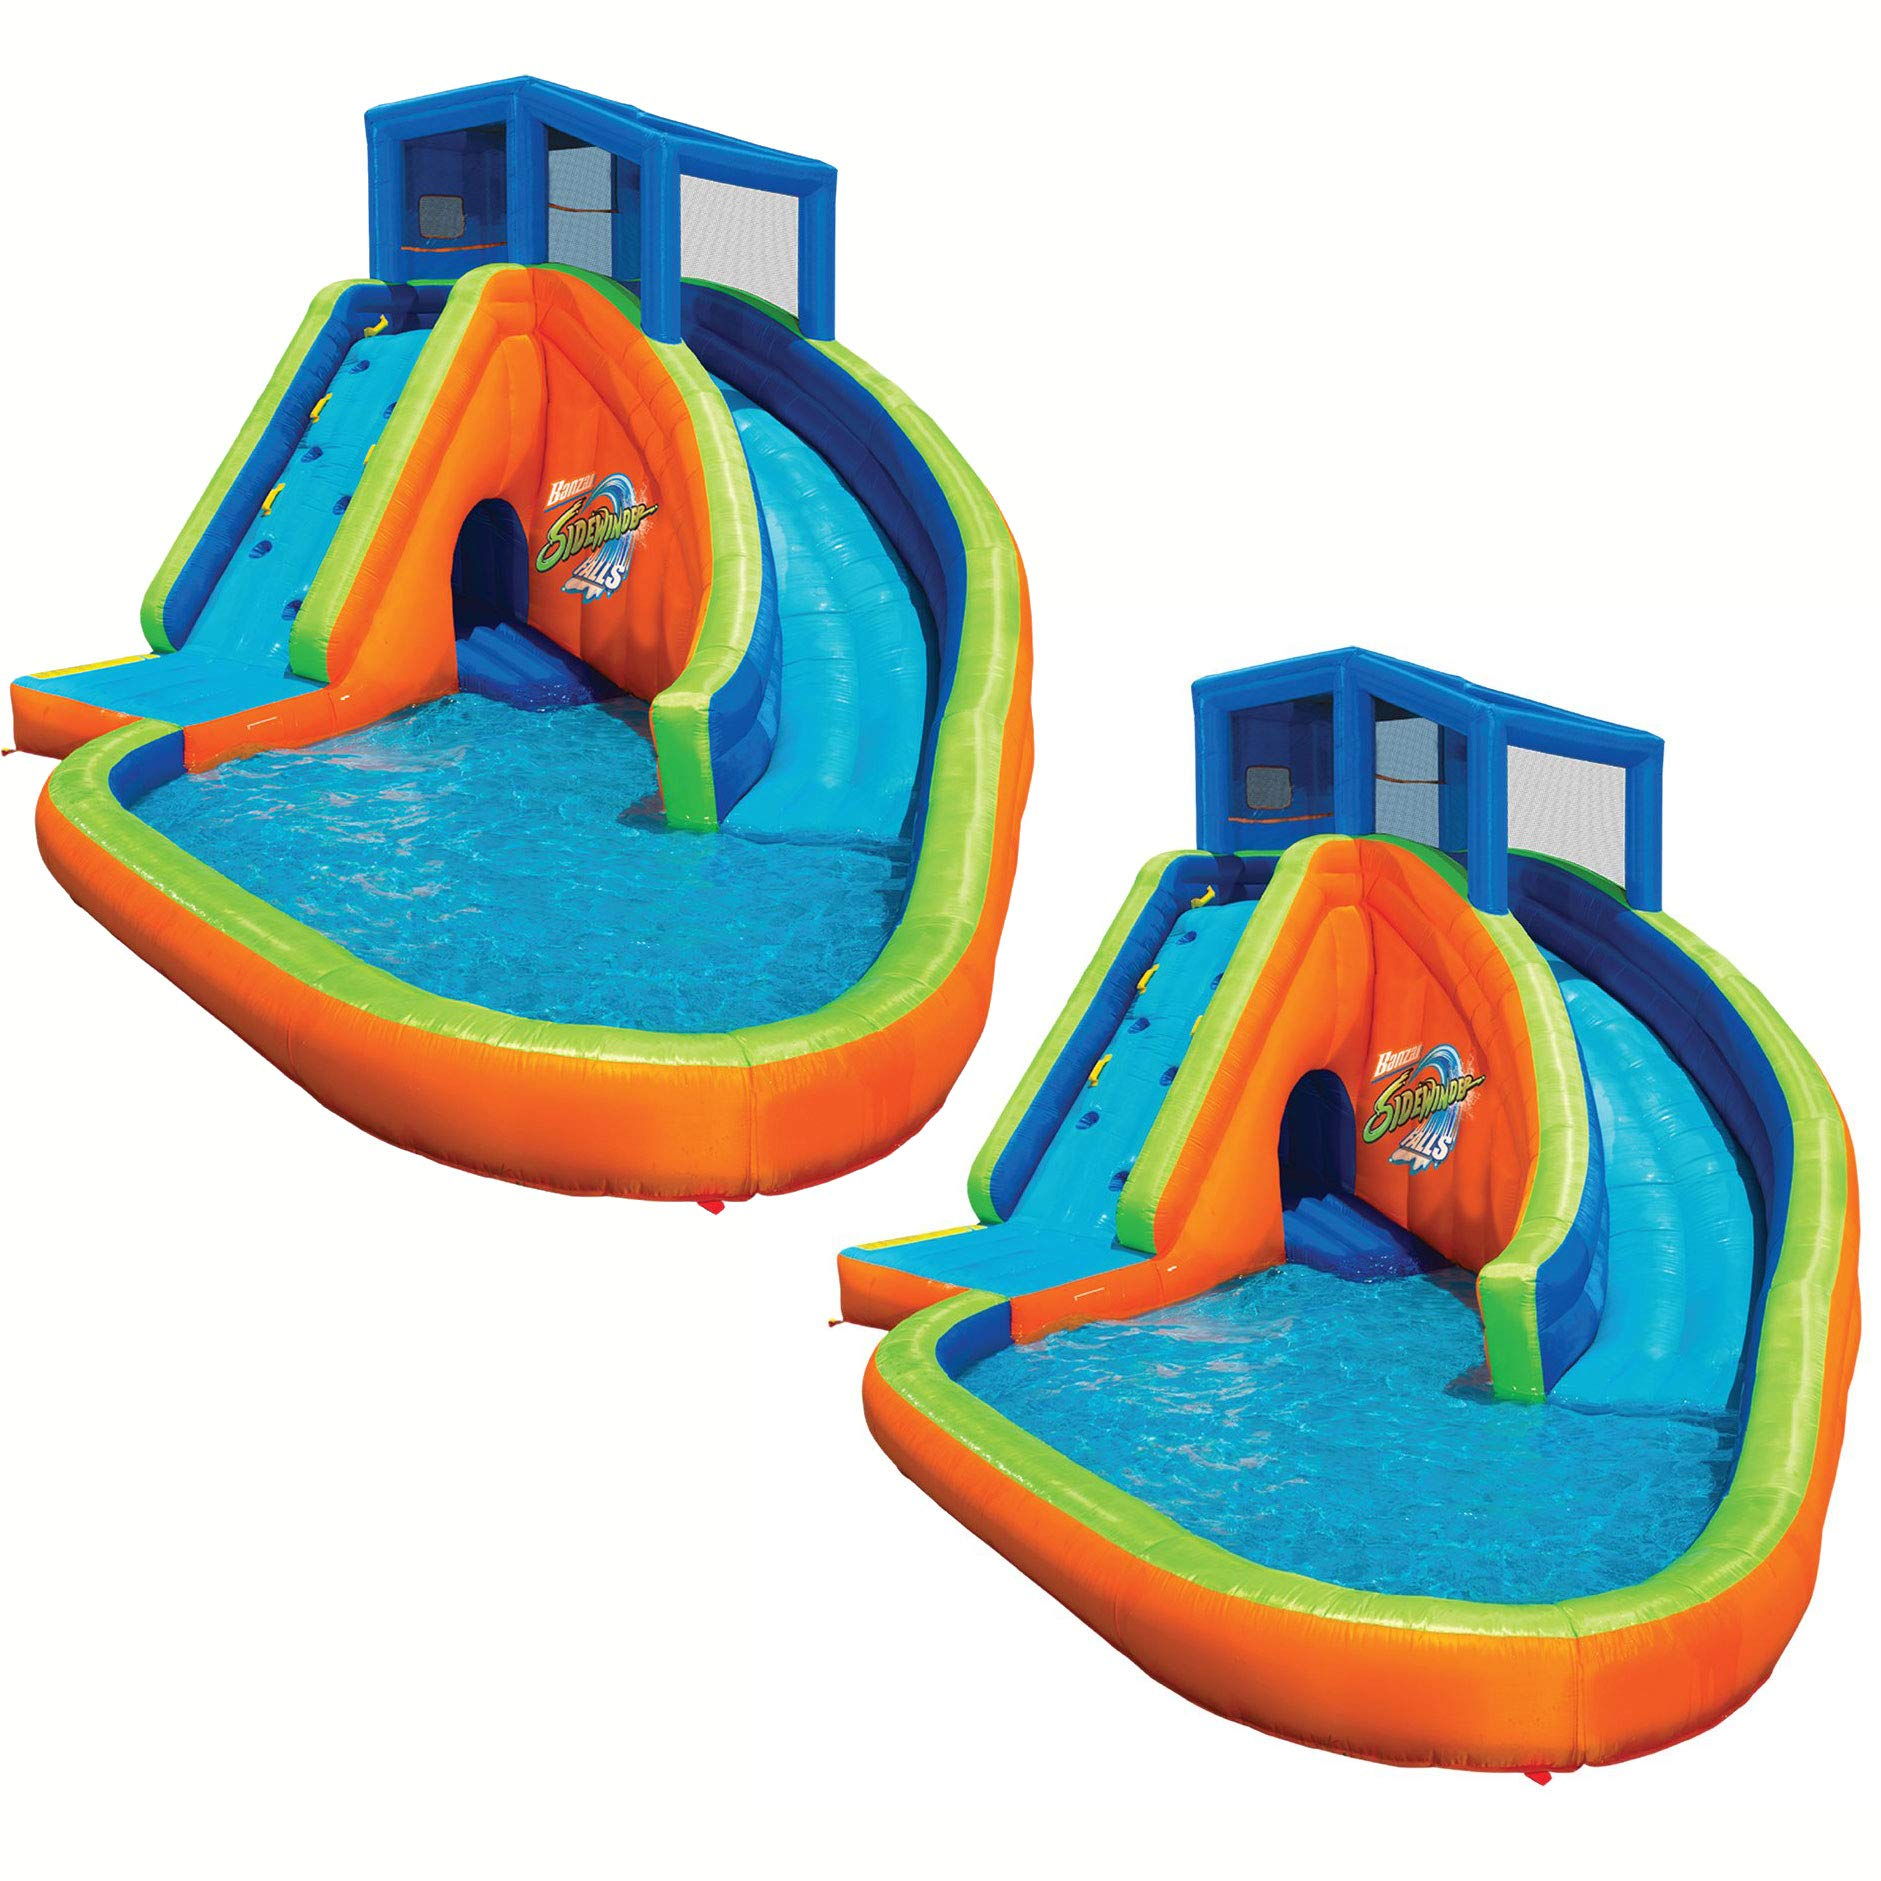 BANZAI Sidewinder Falls Inflatable Water Park Kiddie Pool with Slides & Cannons (2 Pack) by BANZAI (Image #1)